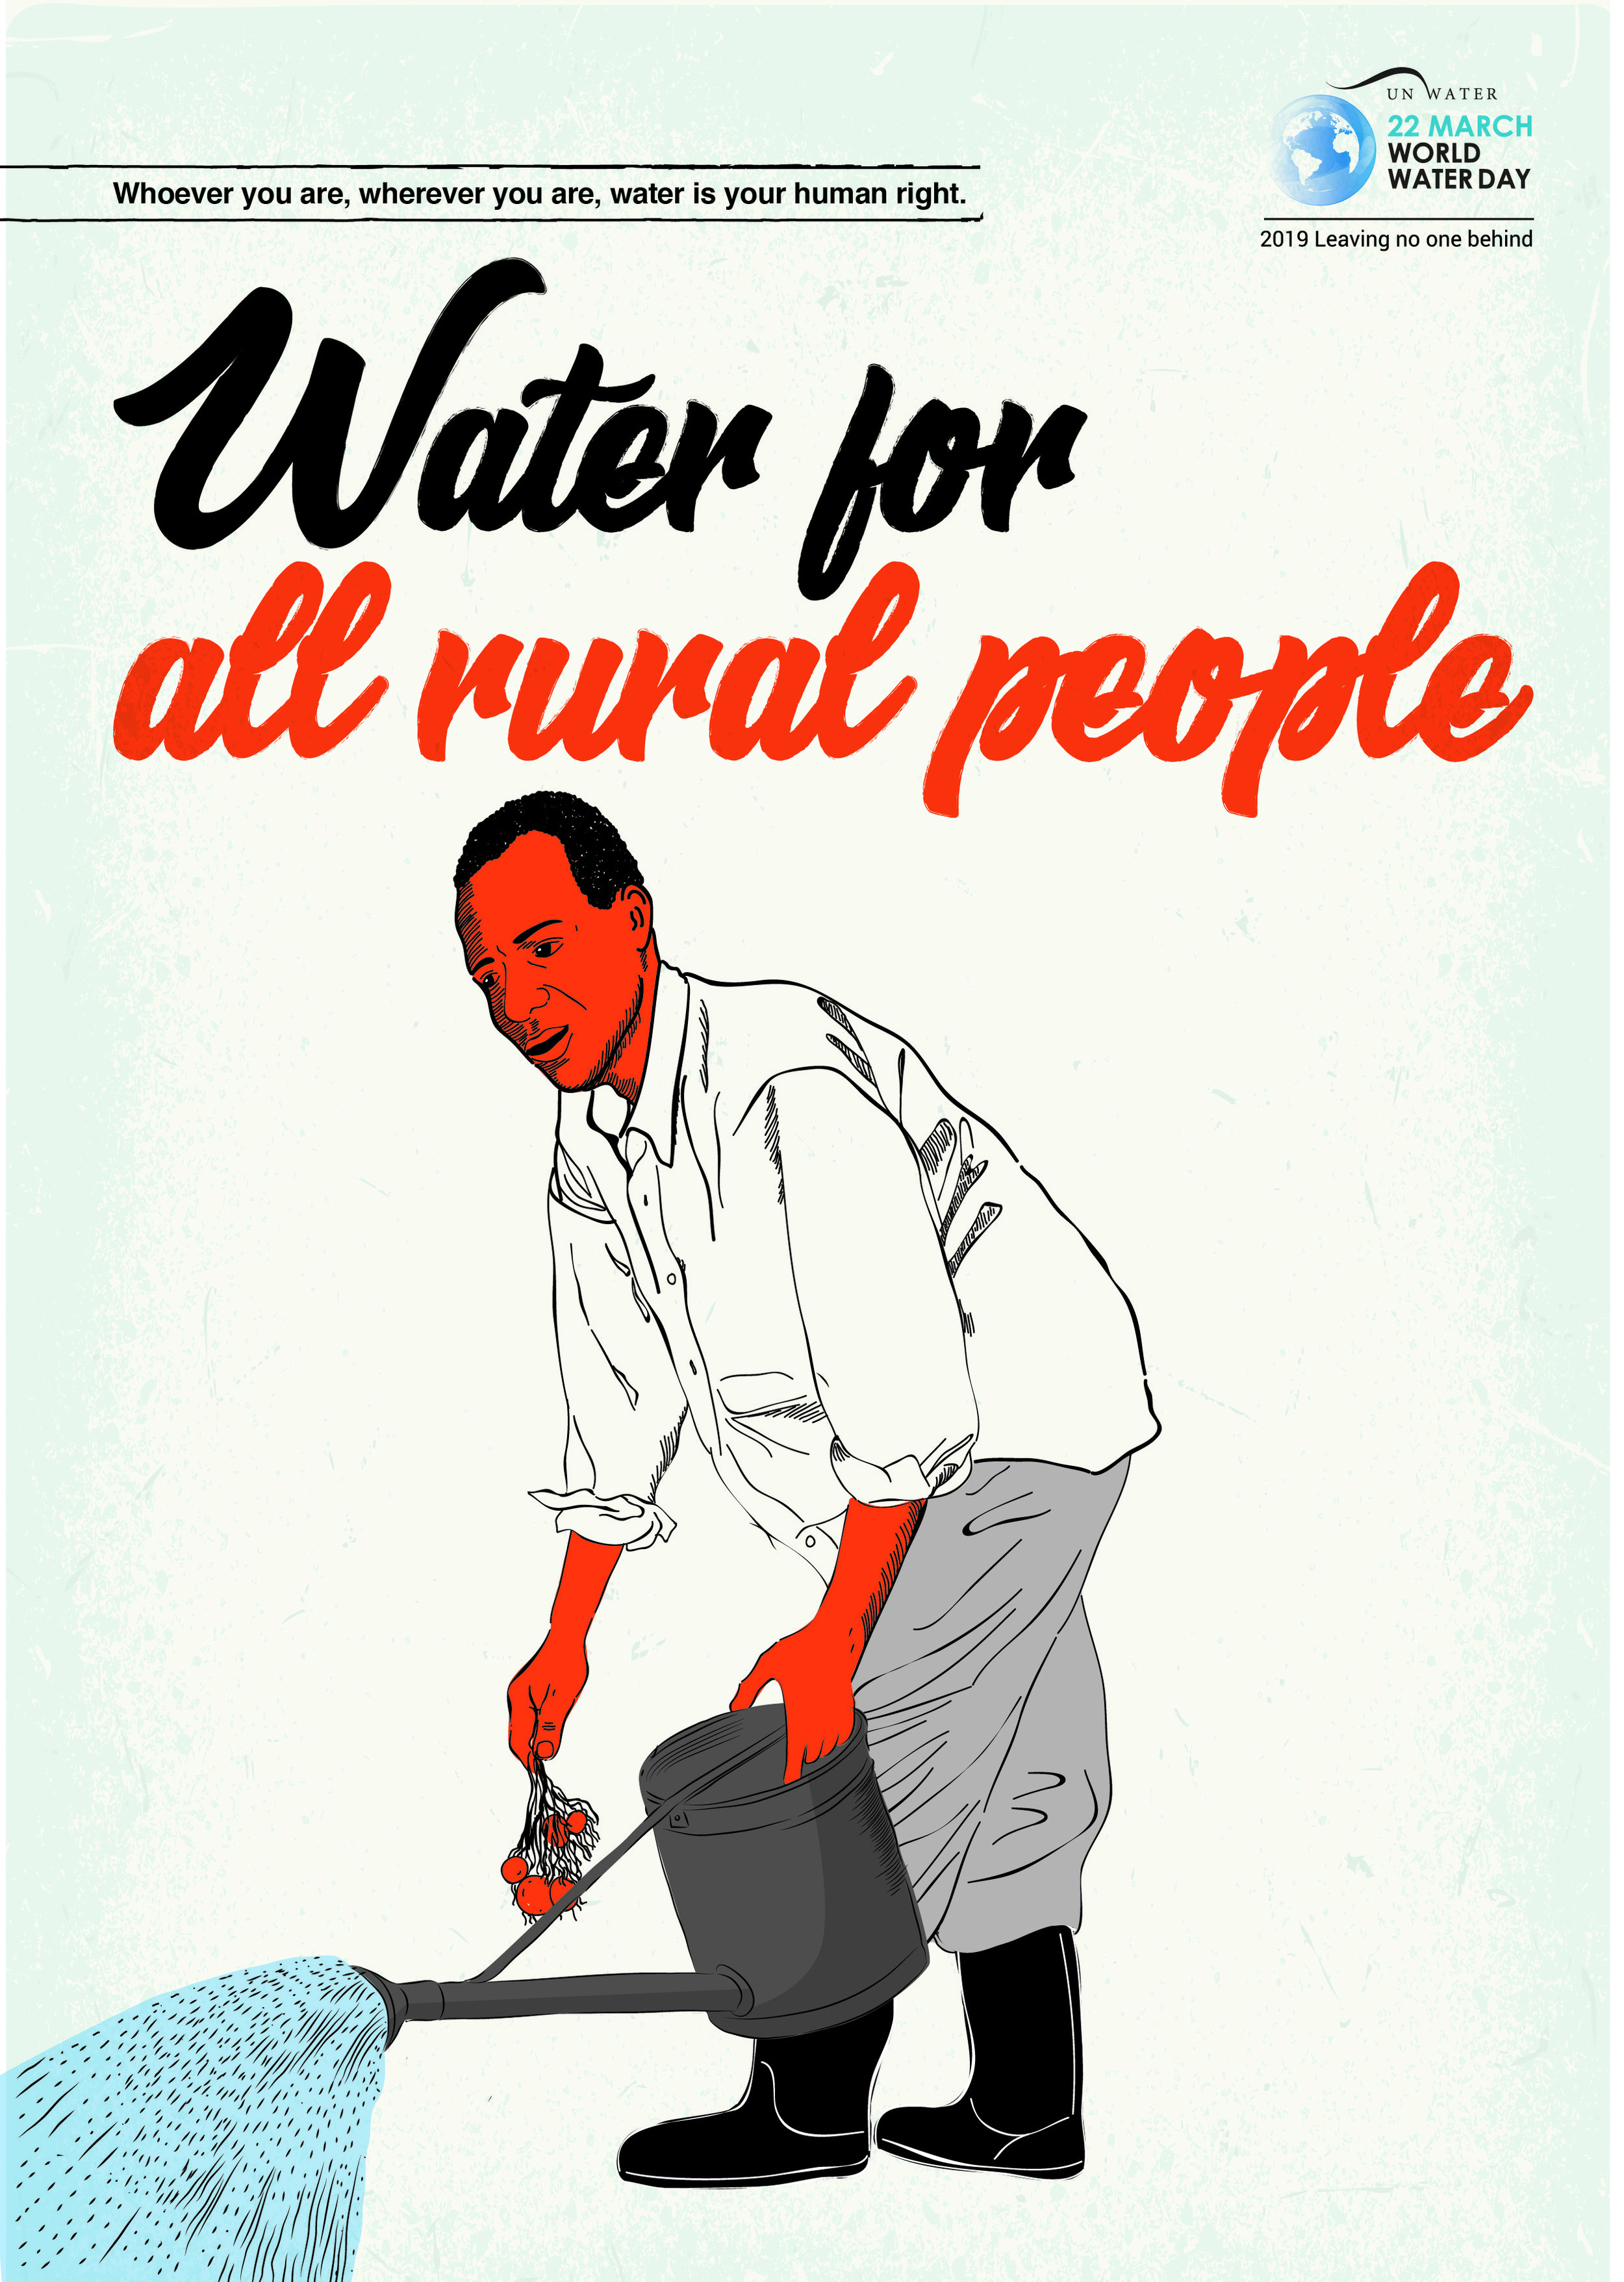 Poster created for World Water Day